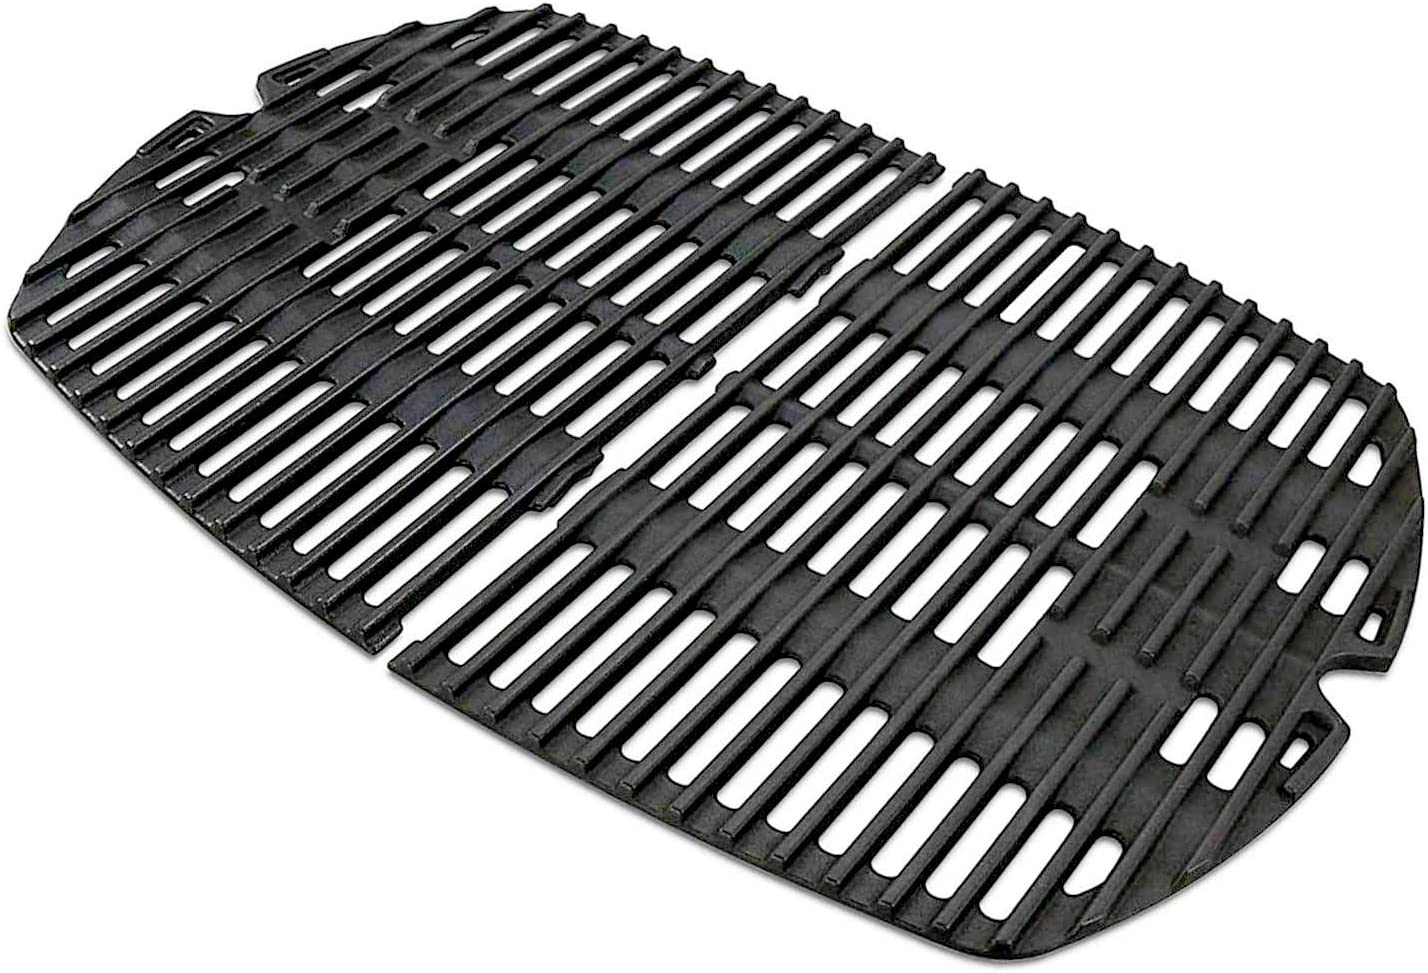 Votenli C764E Ranking TOP16 2-Pack 21.5 x Max 71% OFF 15.3 Iron inchesCast G Grid Cooking